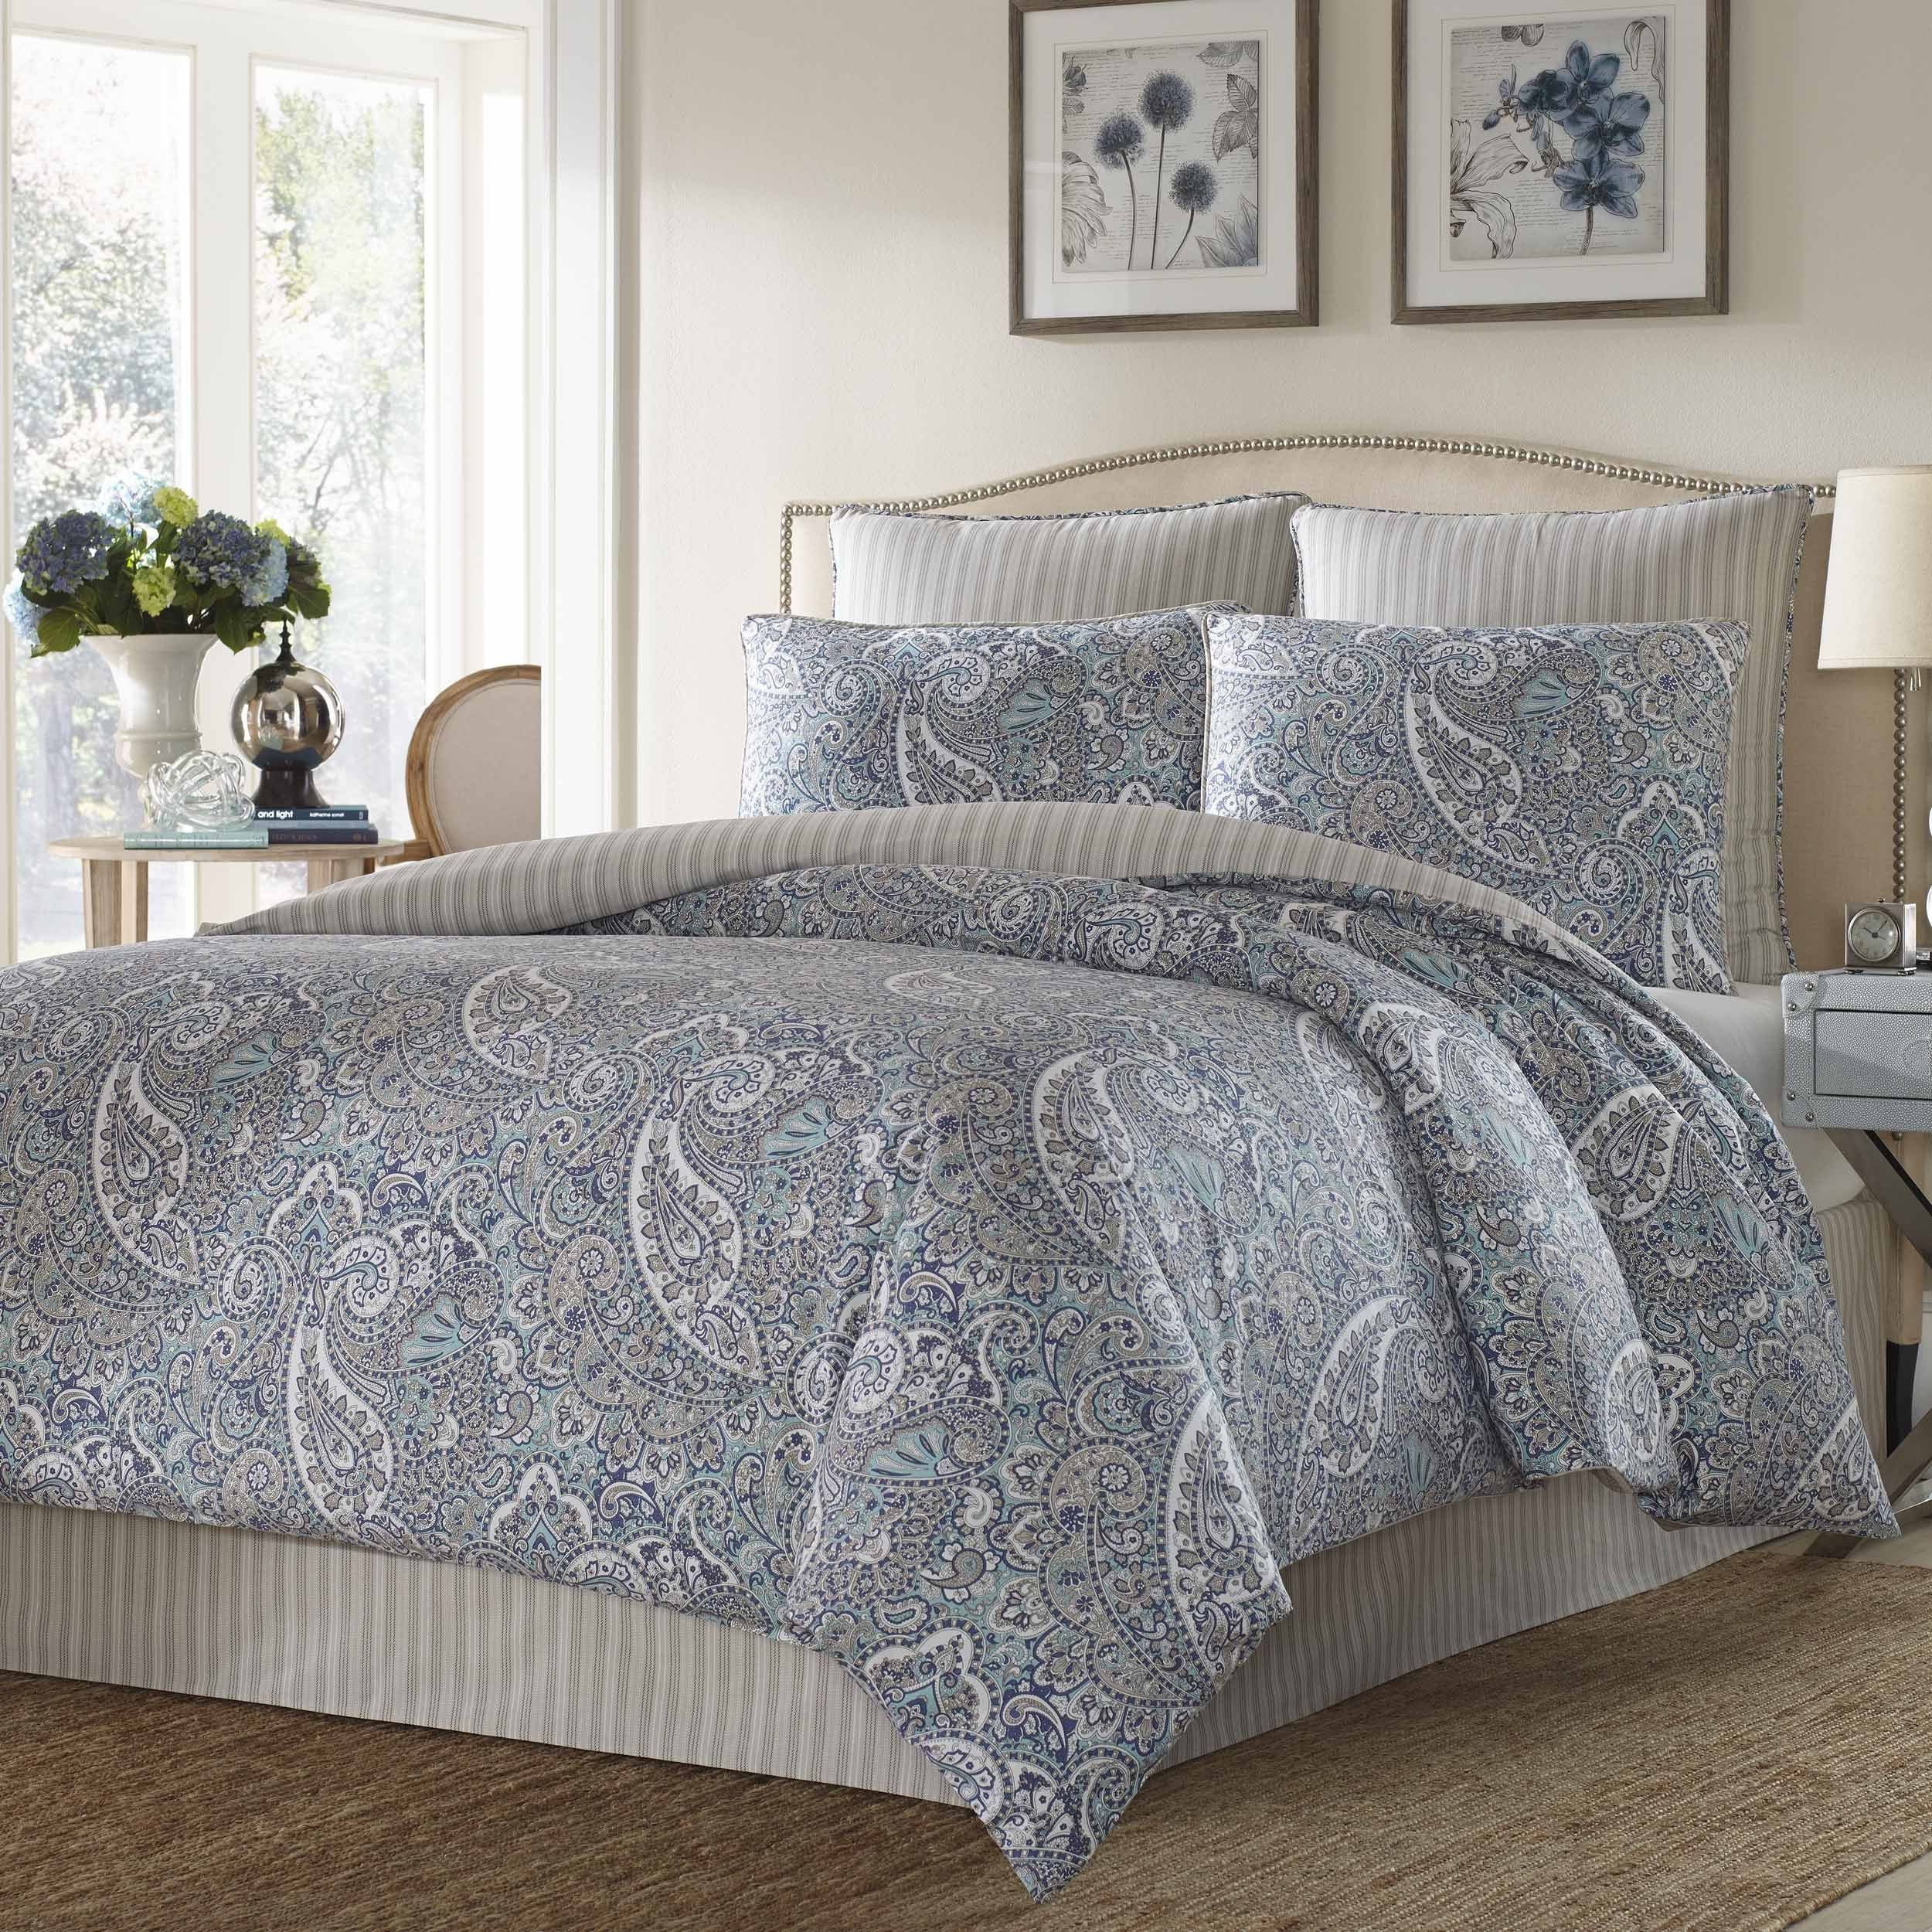 give your room a stunning finishing touch when you dress up your bed